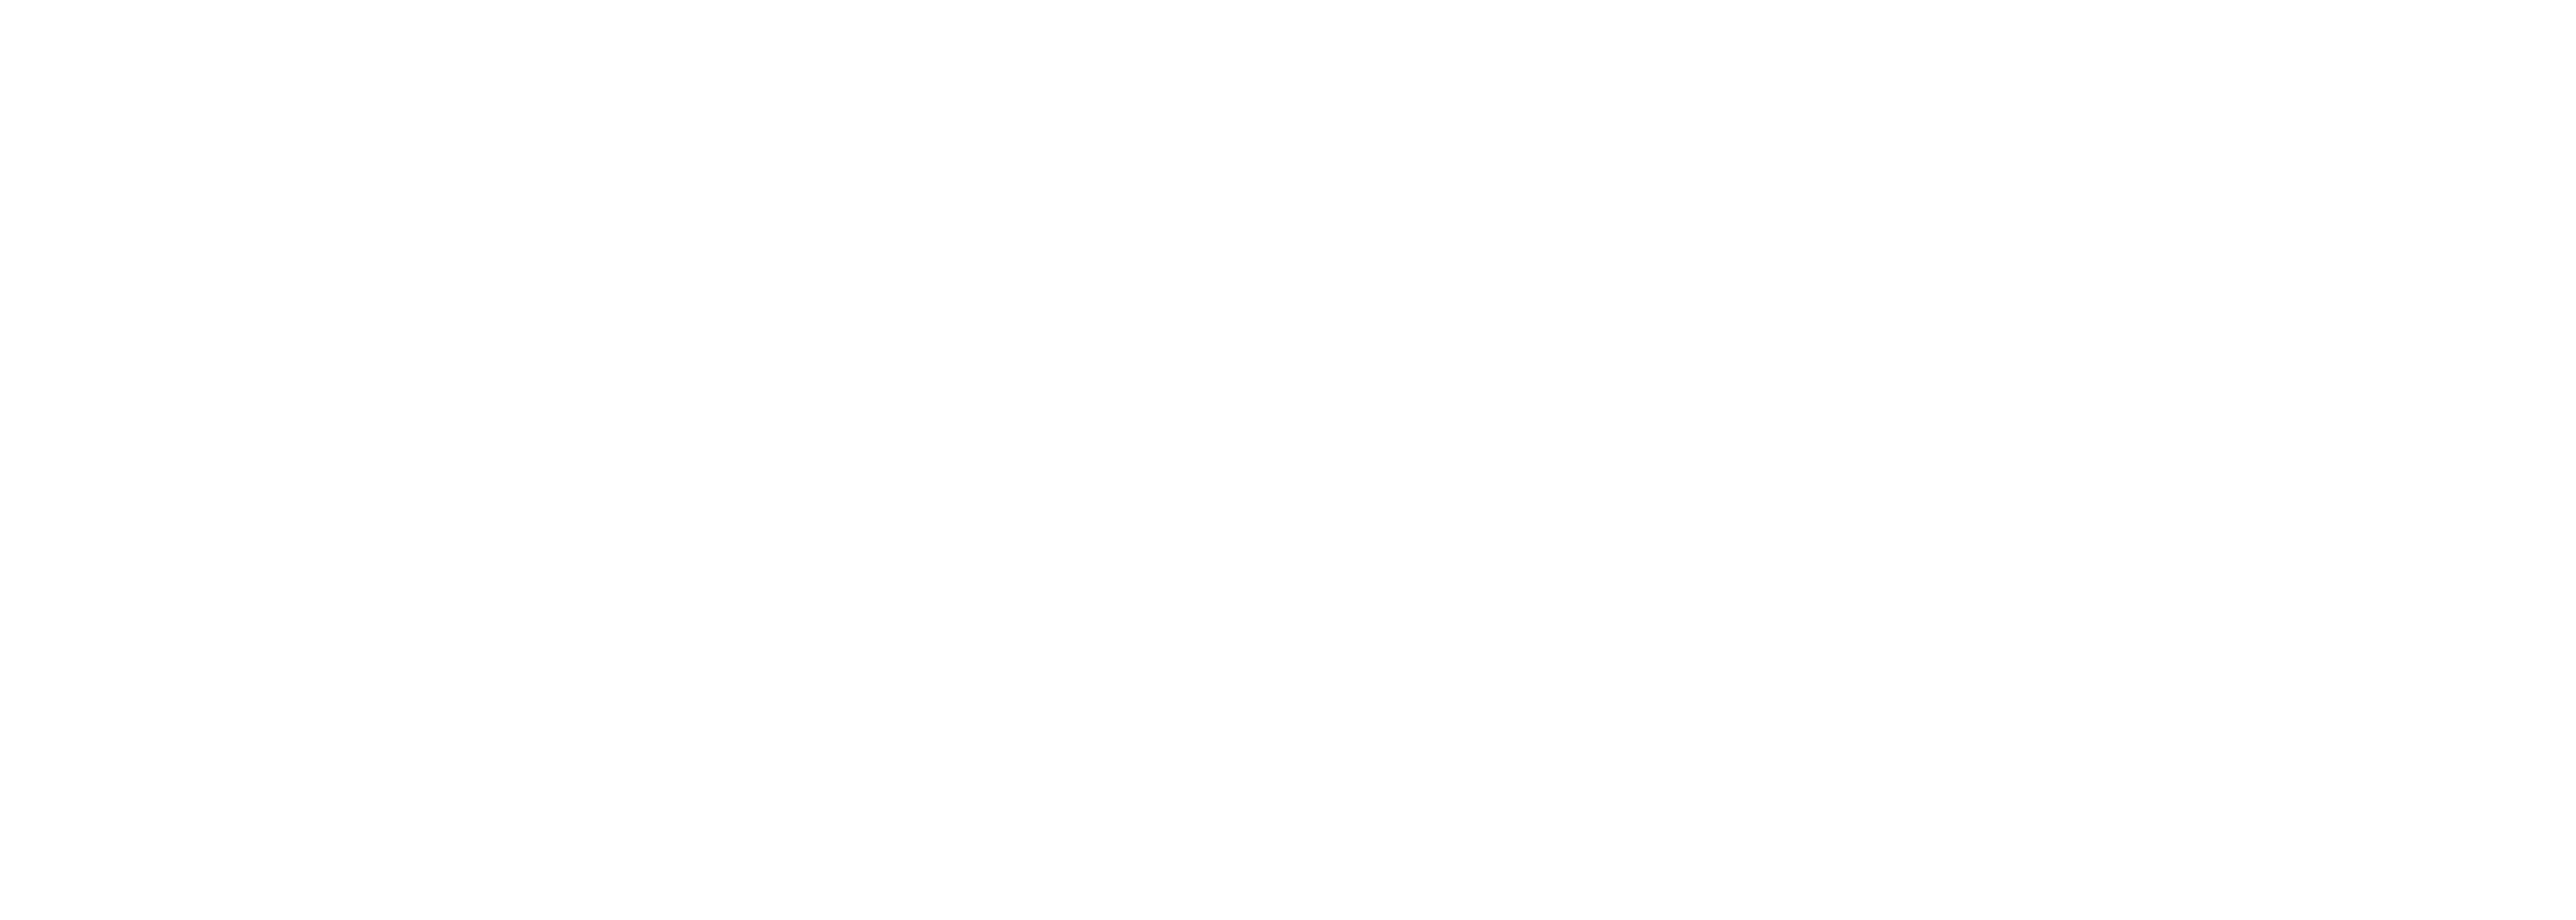 marquis-03-06-21-slider2.png